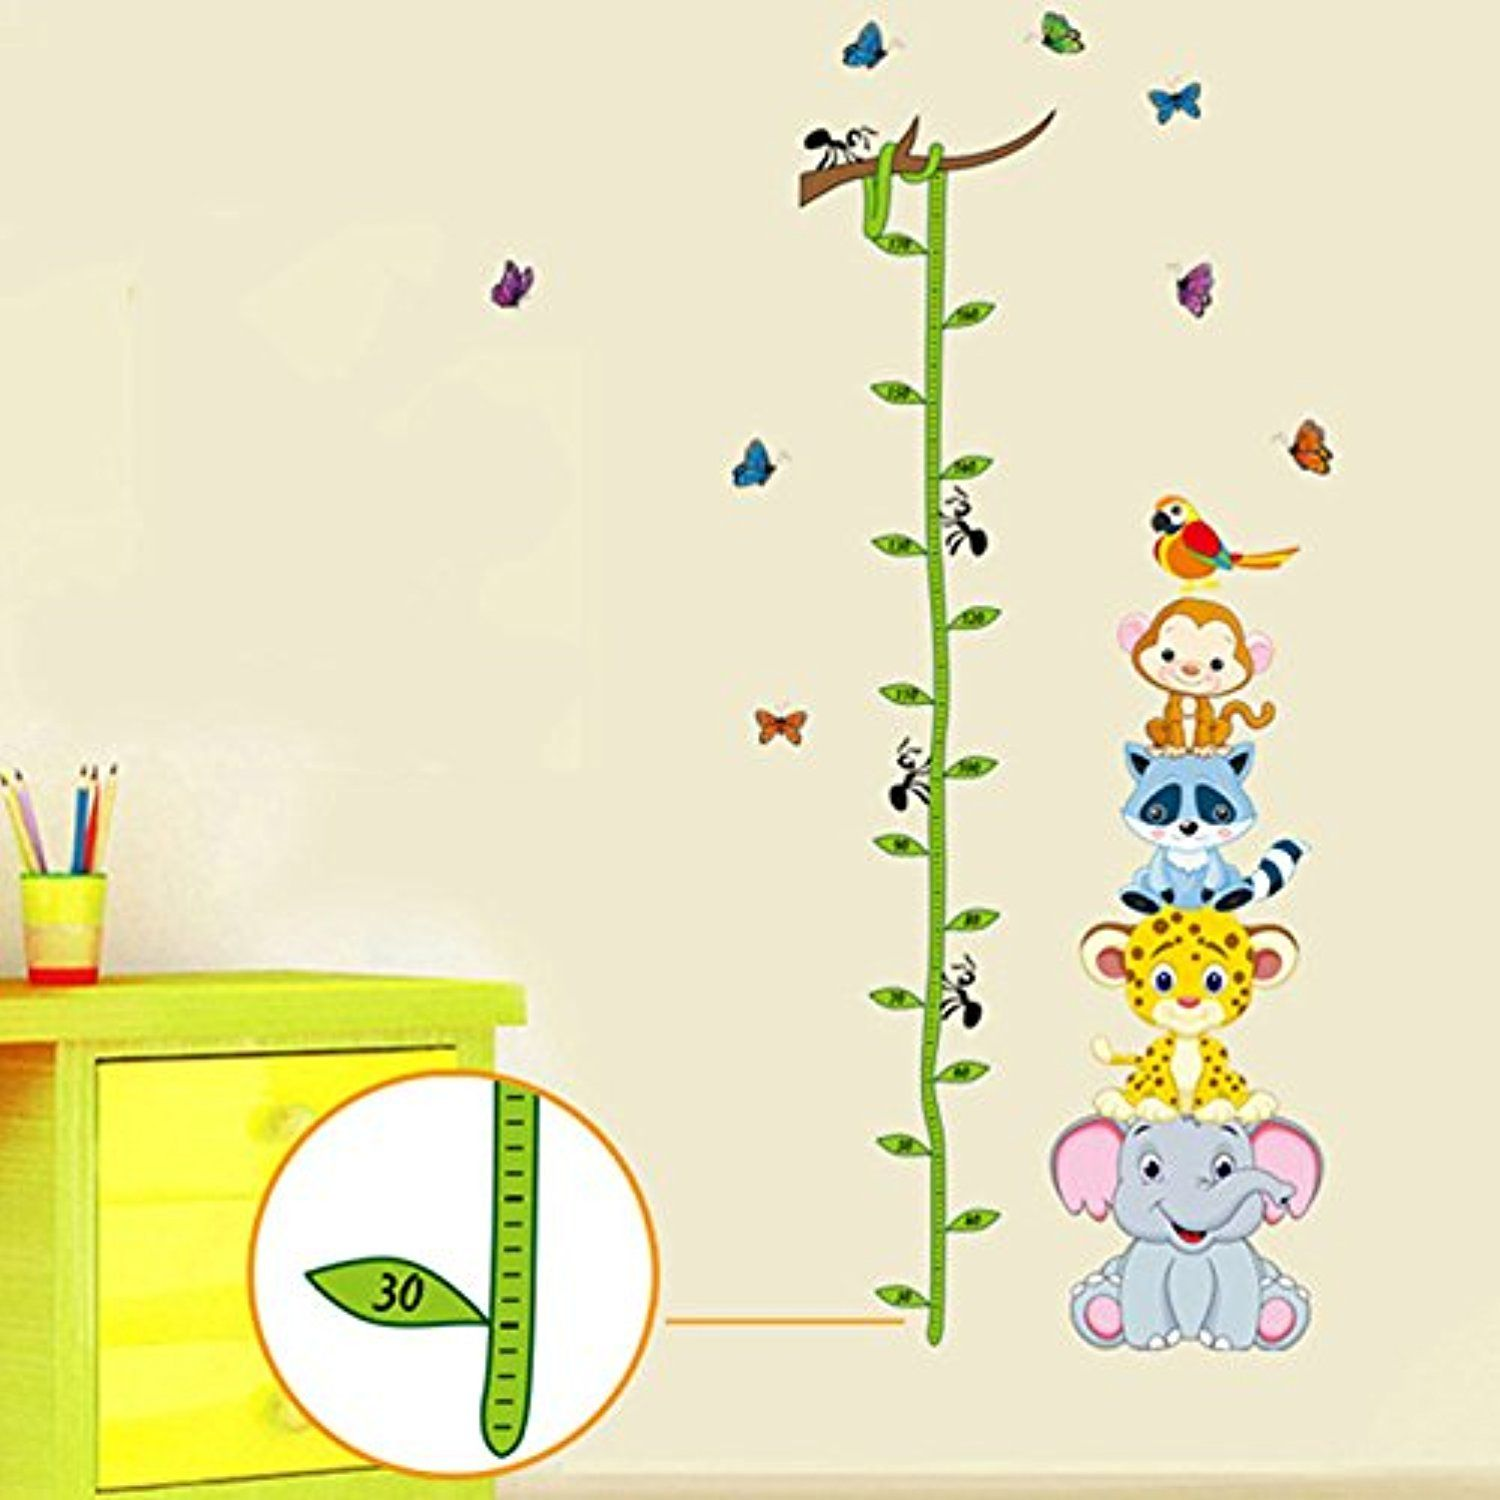 Wall Stickers Wall Poster Decals Cartoon Animal Child Tall Height